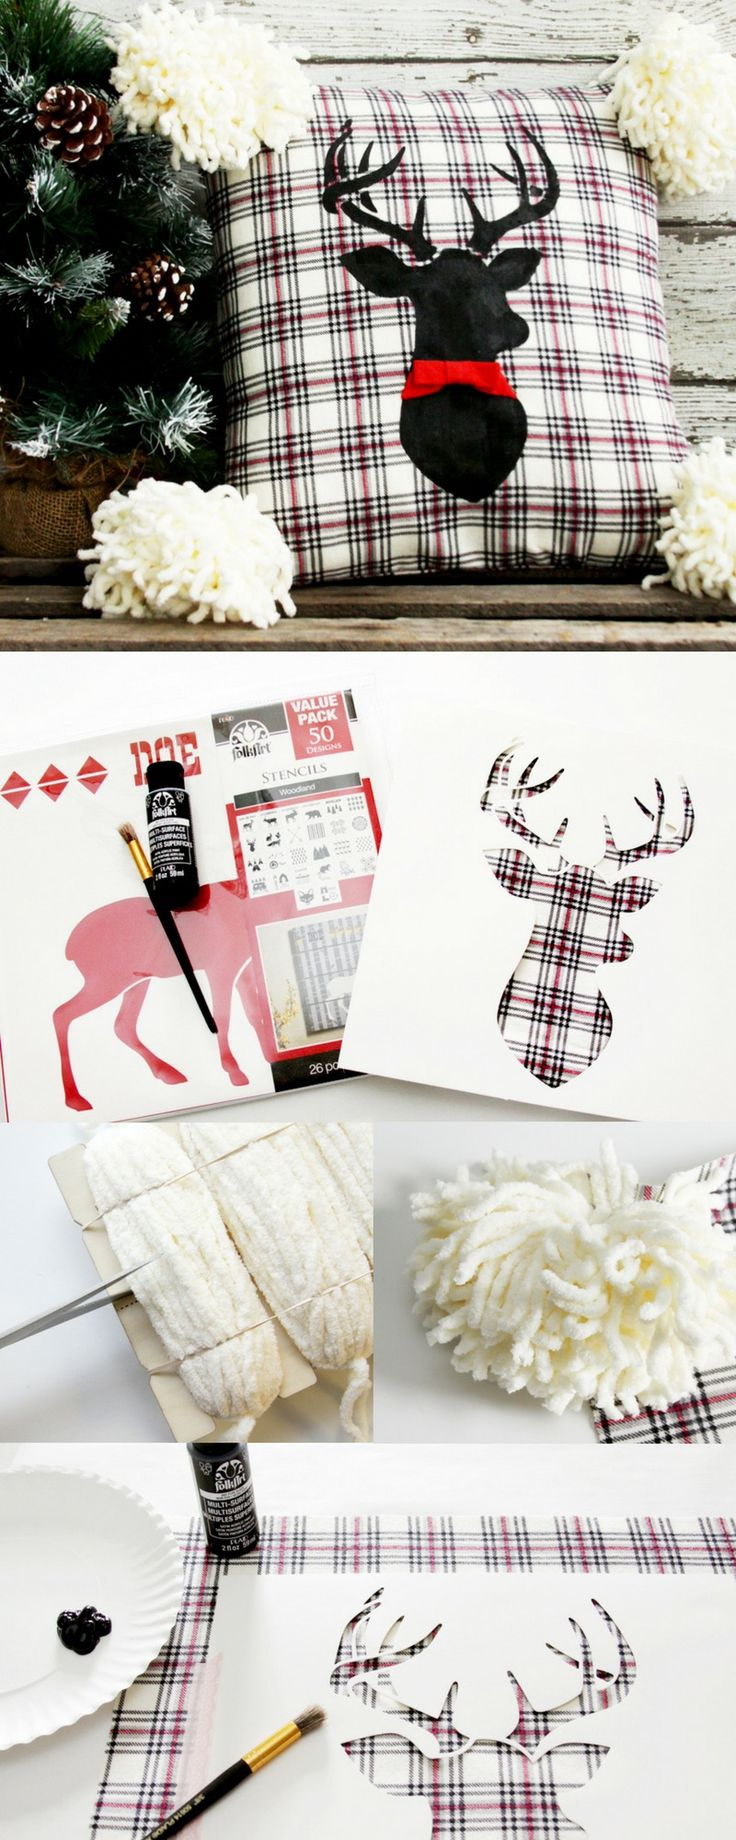 DIY painted pillow and how to make your own yarn pom poms! Easy decorative stenciled pillow cover  tutorial - fun farmhouse plaid with deer for Christmas or change it up for any time of the year with another stencil. #diypillow #christmas